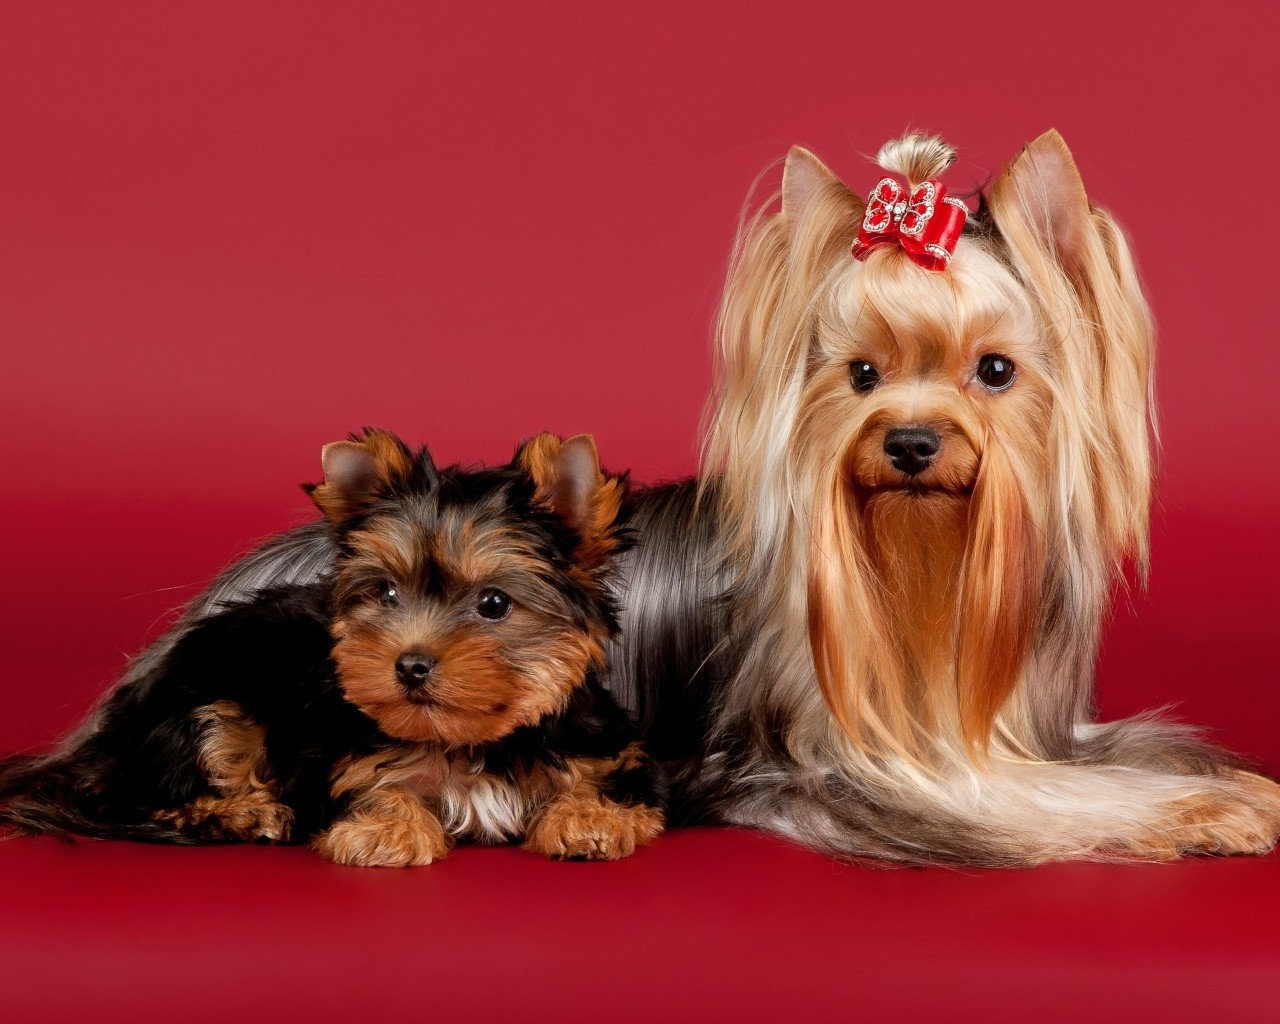 2 Cute Dogs for 1280 x 1024 resolution